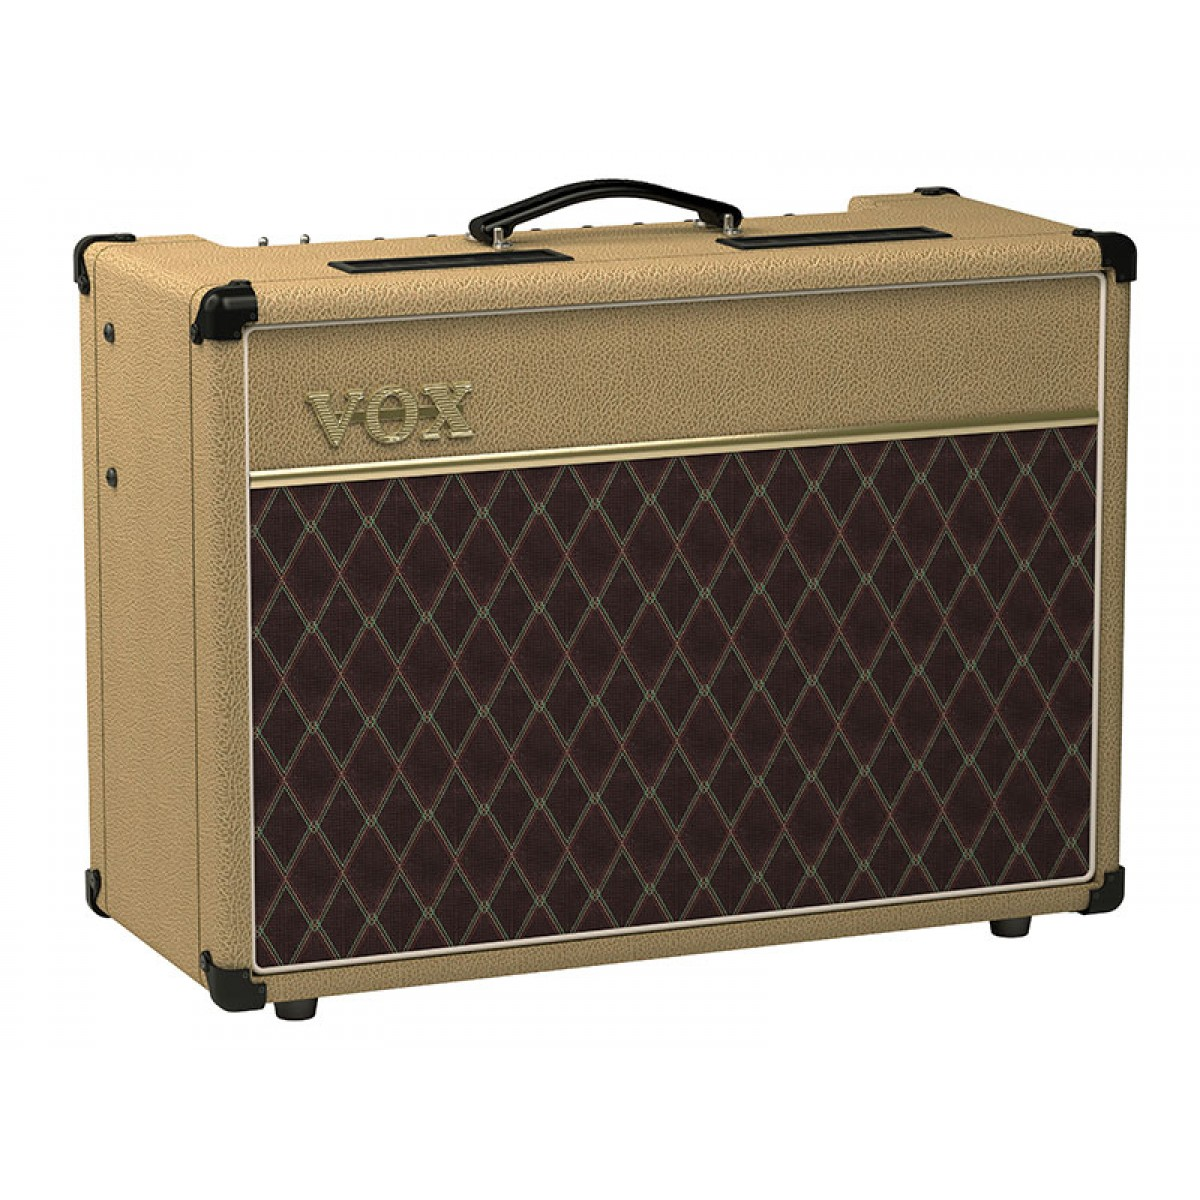 vox ac15 custom white bronco 15w 1x12 guitar amp combo limited edition. Black Bedroom Furniture Sets. Home Design Ideas